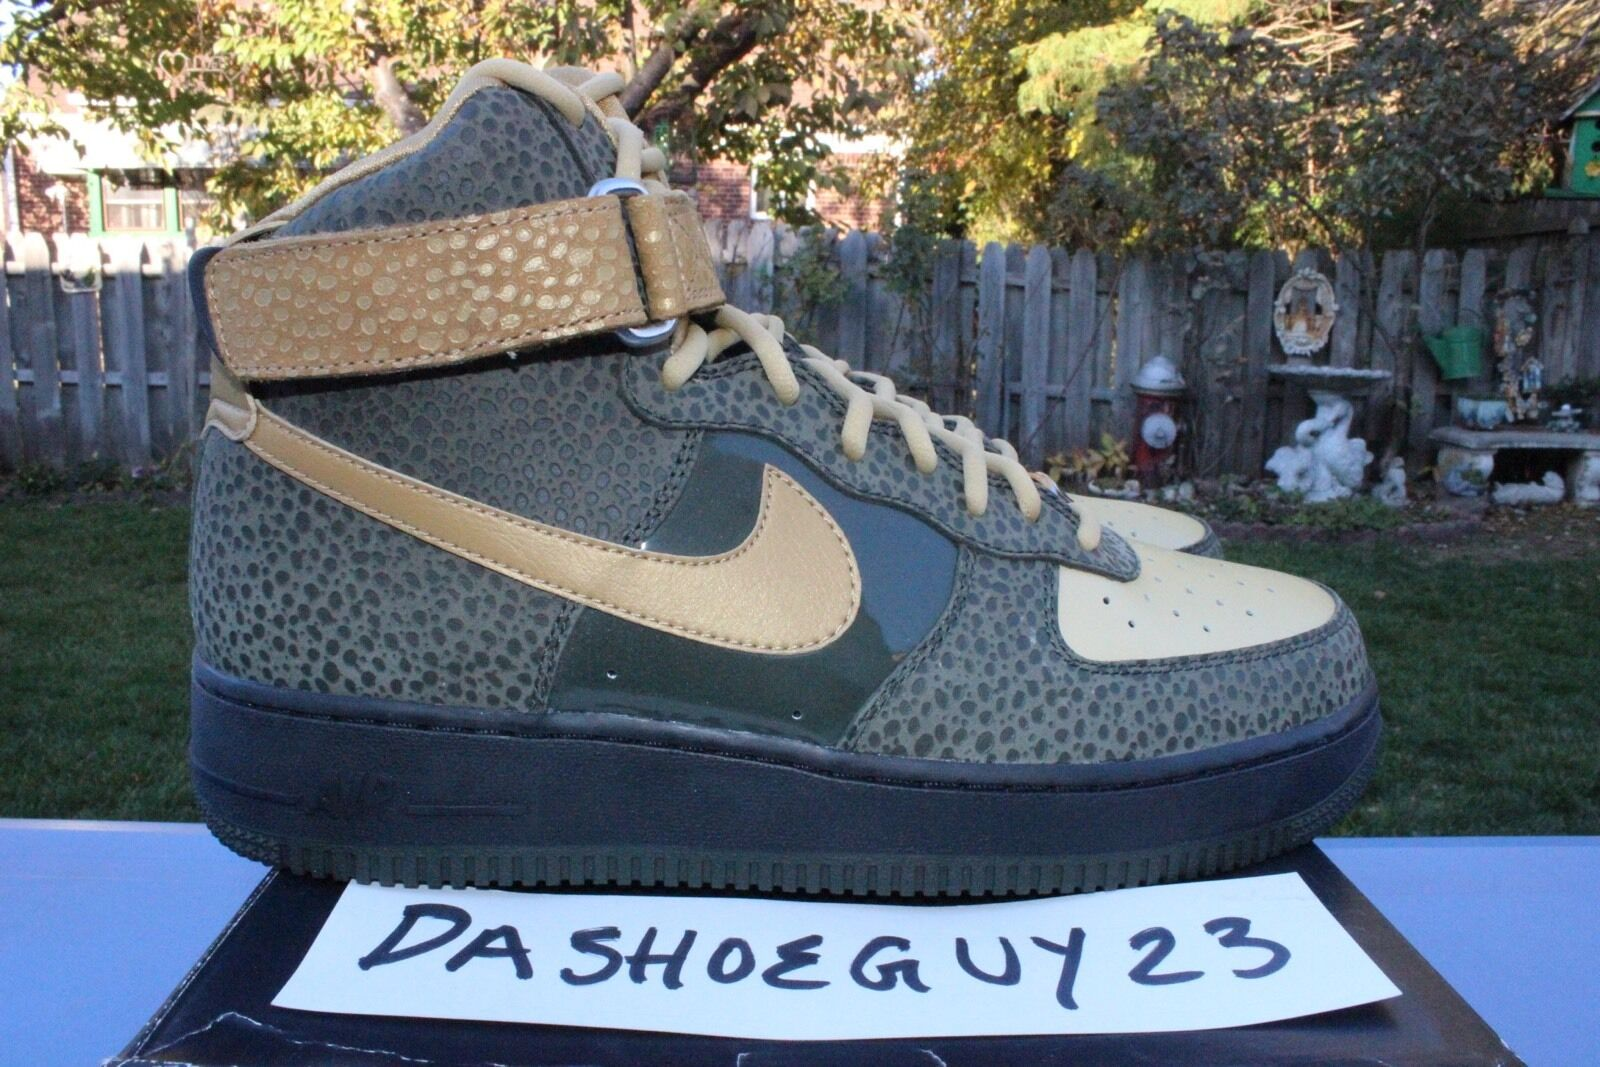 DS NIKE AIR FORCE 1 PREMIUM ZF HIGH HI 9 349384 371 SF SPECIAL FIELD SPNY VLONE